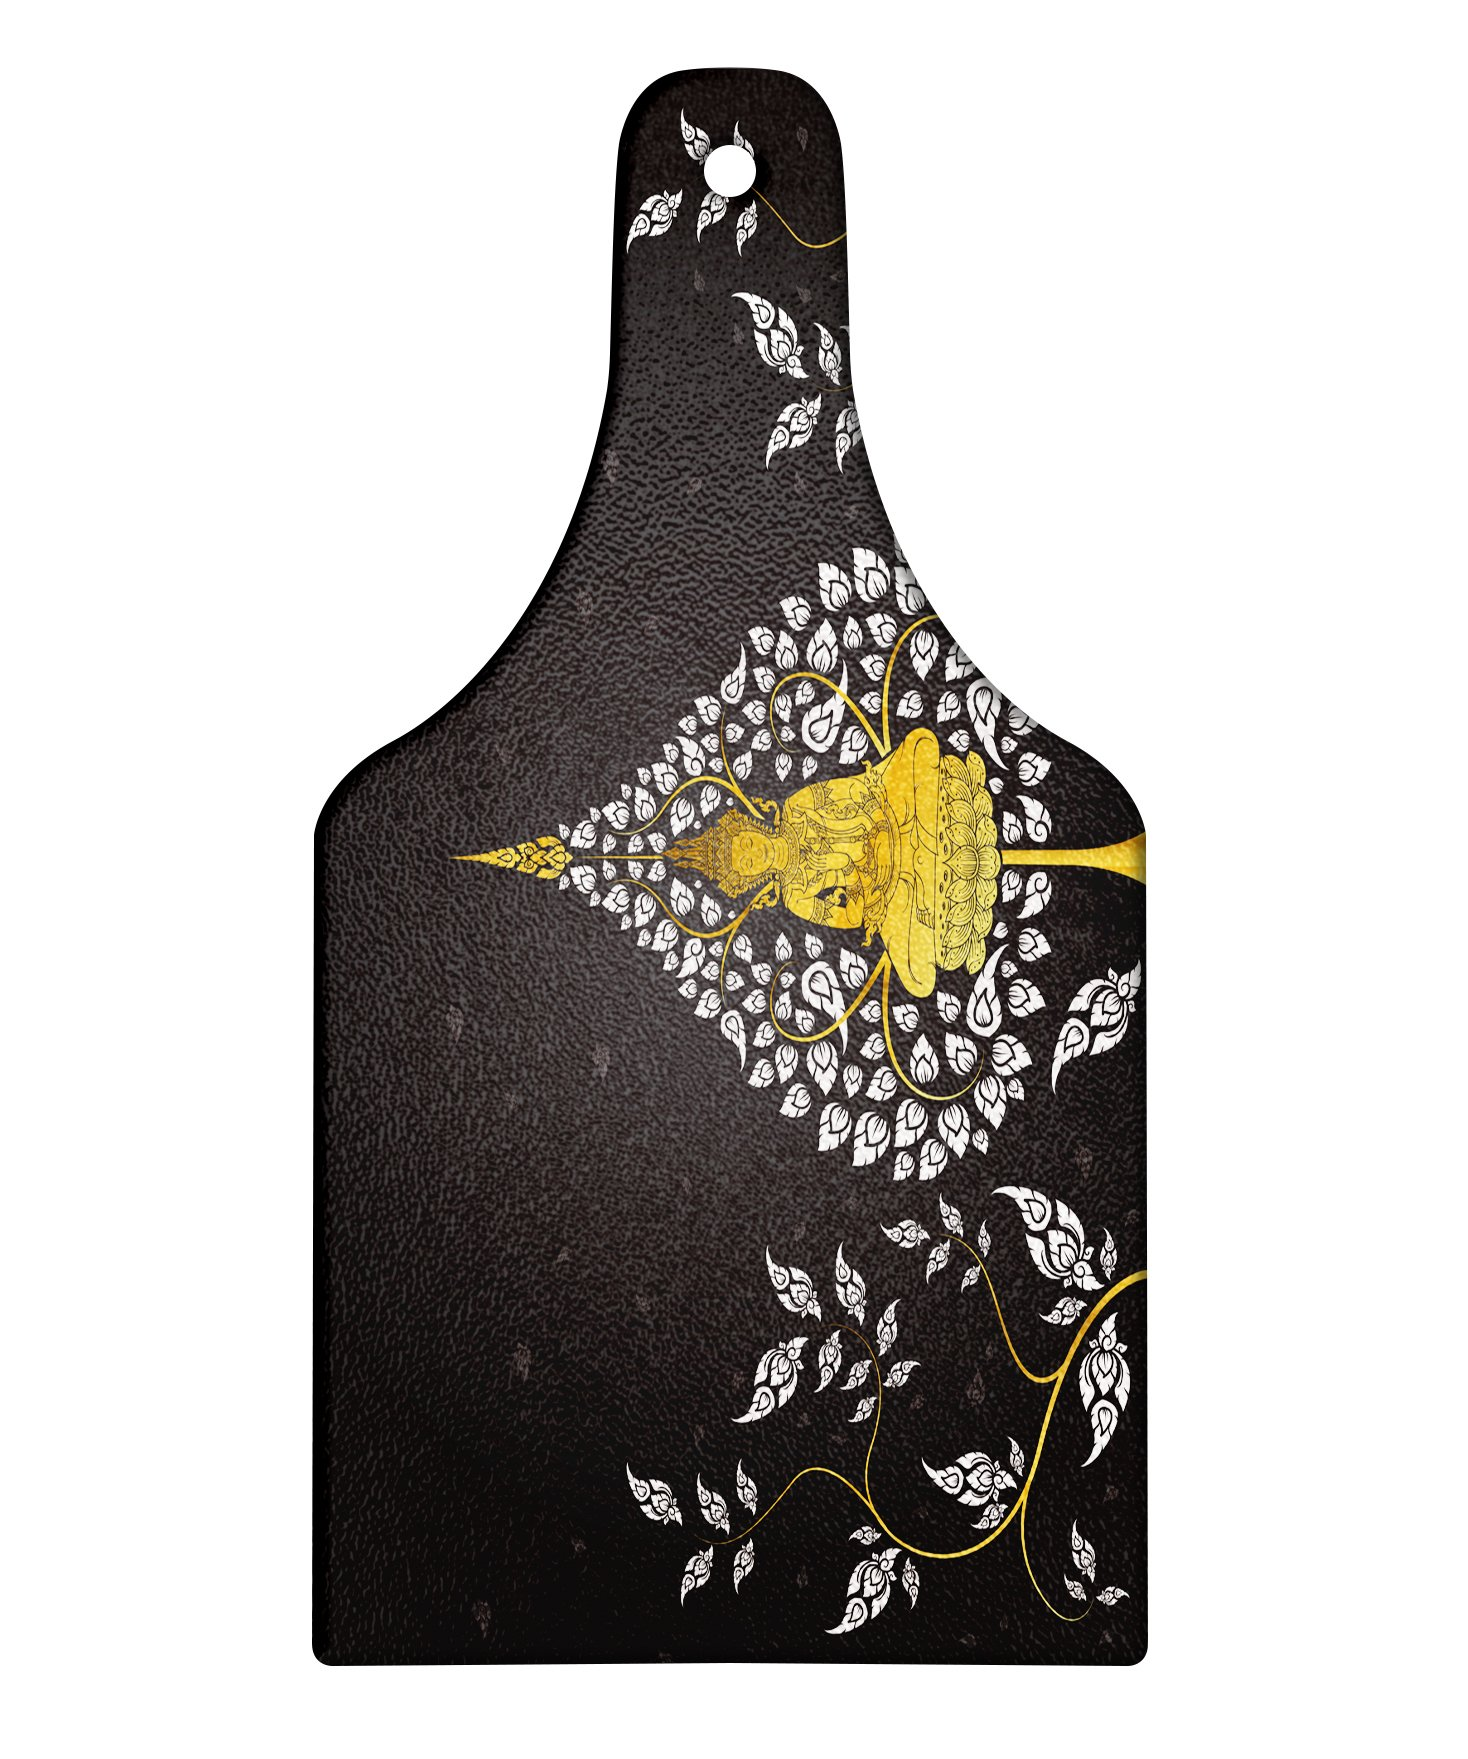 Lunarable Asian Cutting Board, Ancient Religious Thai Character with Floral Elements Meditation, Decorative Tempered Glass Cutting and Serving Board, Wine Bottle Shape, Charcoal Grey White Yellow by Lunarable